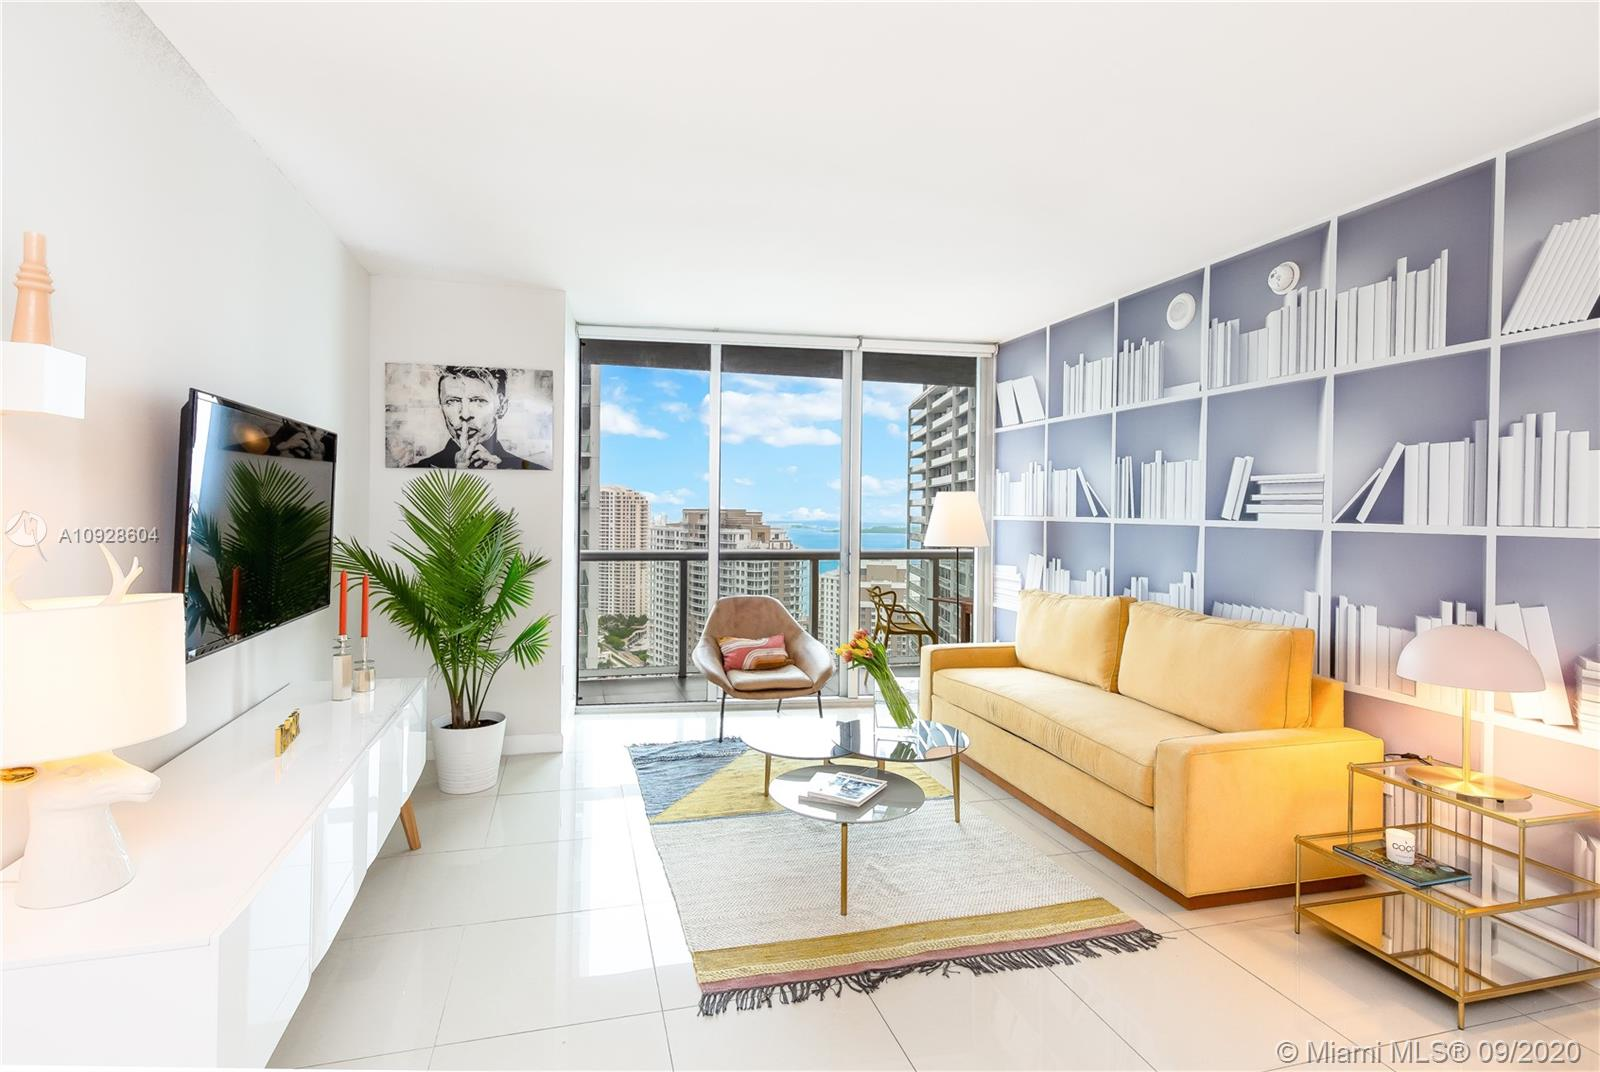 Icon Brickell 3 #3401 - 485 Brickell Ave #3401, Miami, FL 33131